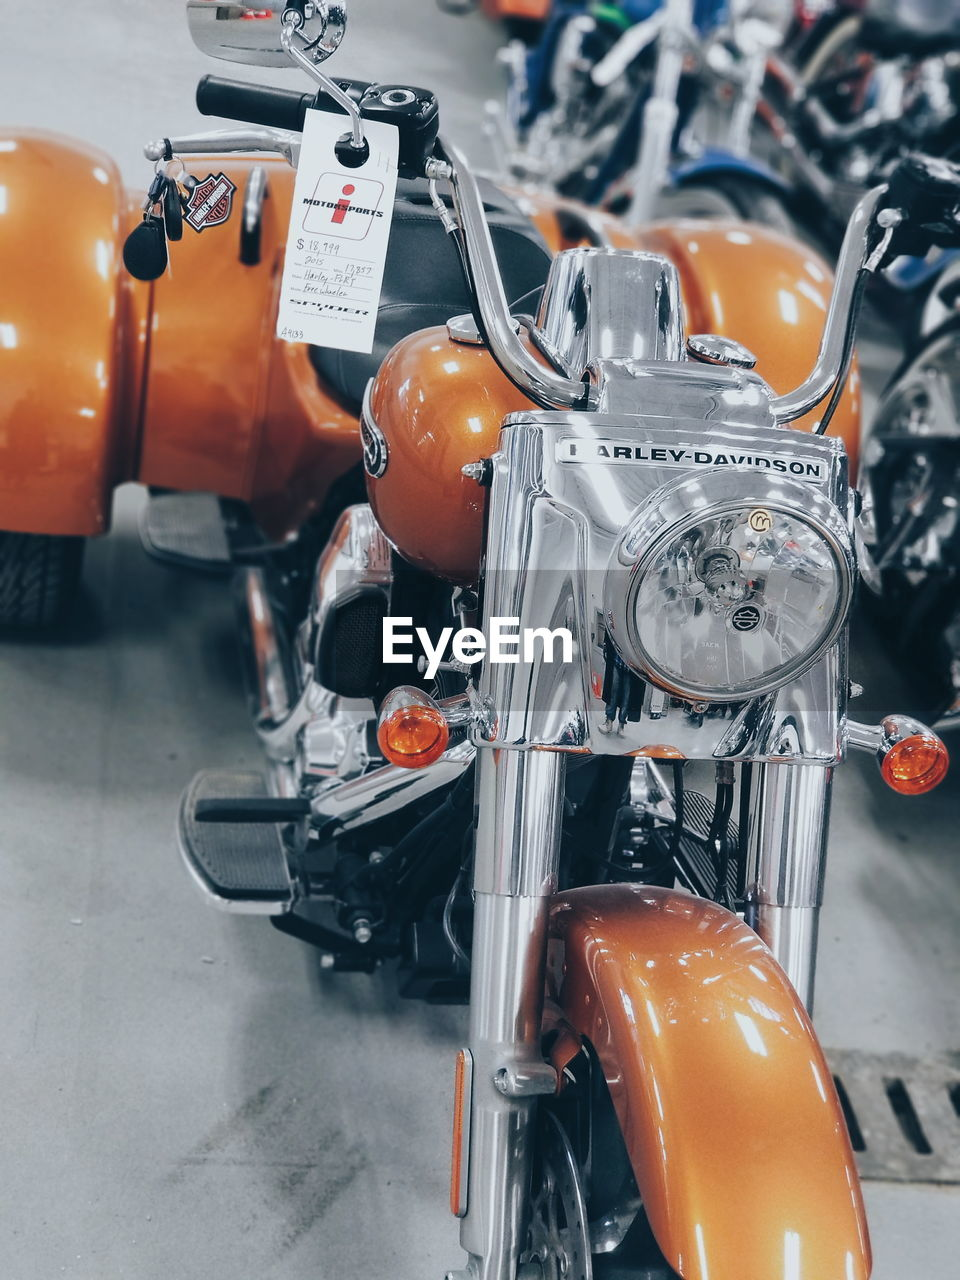 mode of transportation, transportation, land vehicle, stationary, orange color, motorcycle, headlight, no people, scooter, city, bicycle, still life, motor scooter, street, motor vehicle, focus on foreground, day, car, outdoors, road, wheel